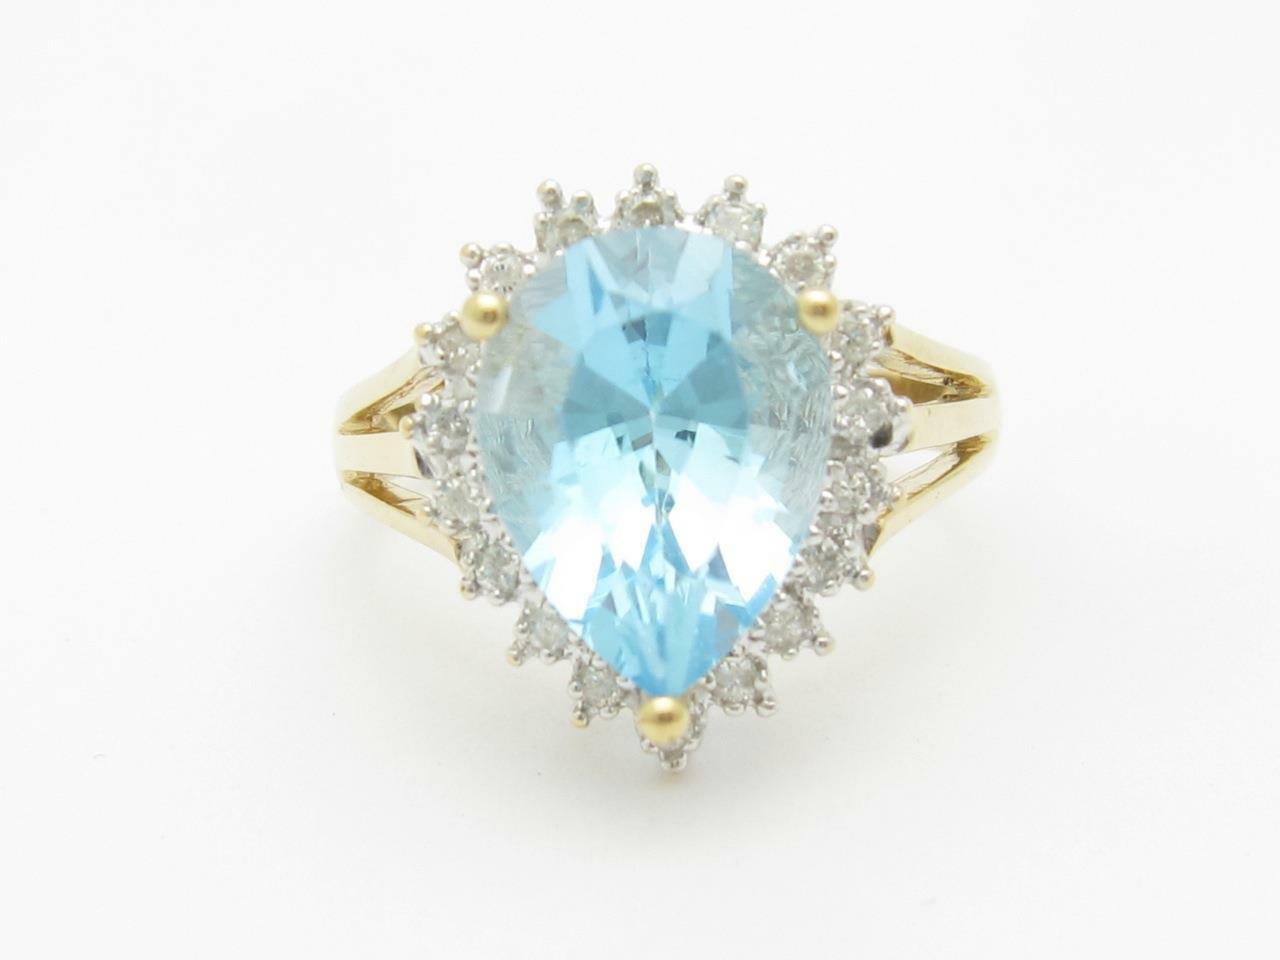 14k Yellow gold & Diamond bluee Topaz Pear Shape Halo Design Large Stone Ring